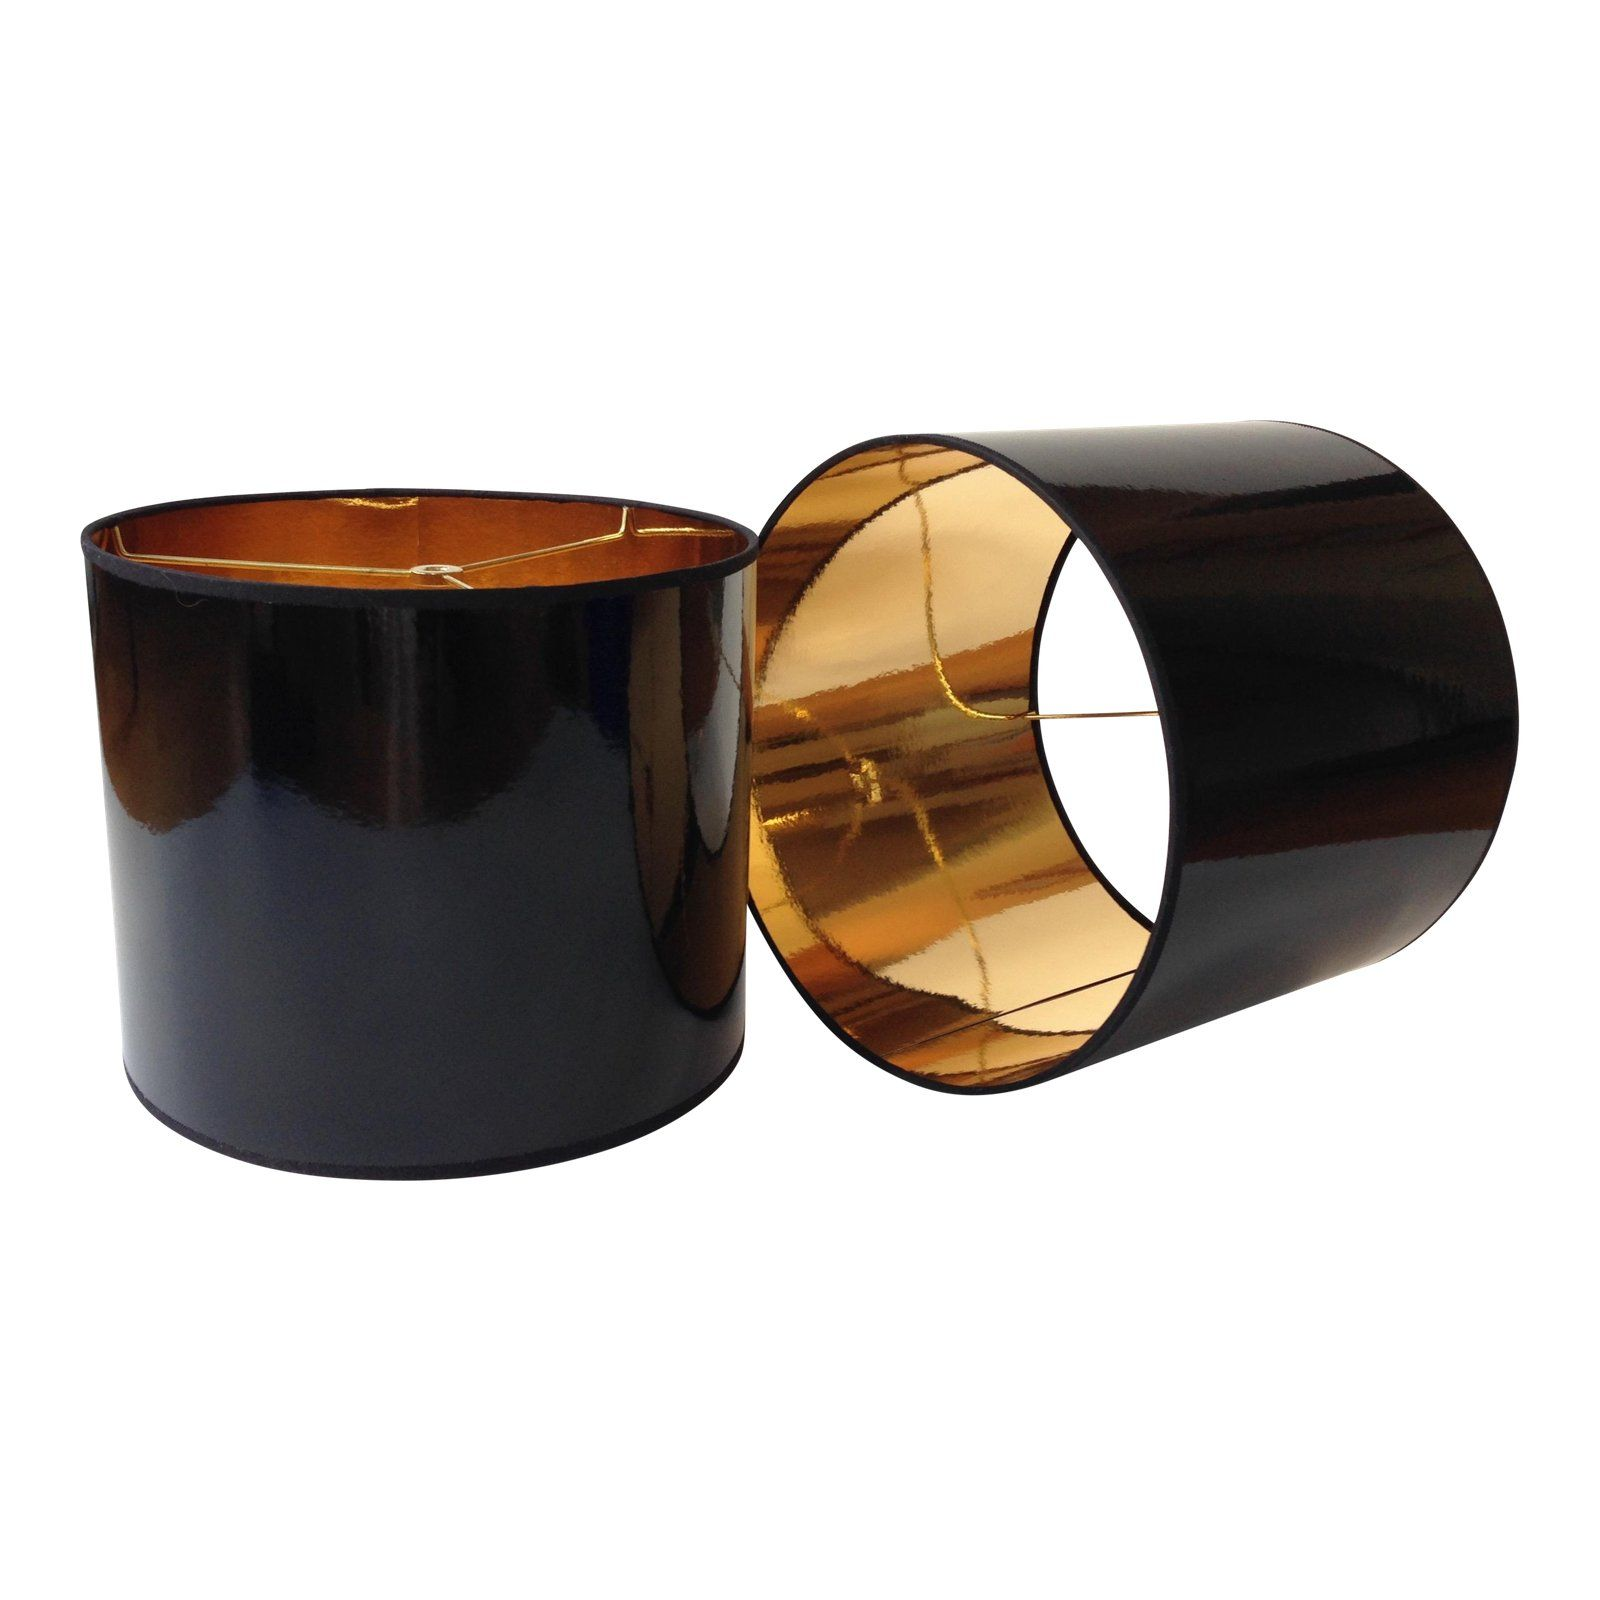 Black High Gloss Drum Lamp Shade With Gold Lining Chairish Drum Lampshade Black Lampshade Lamp Shade